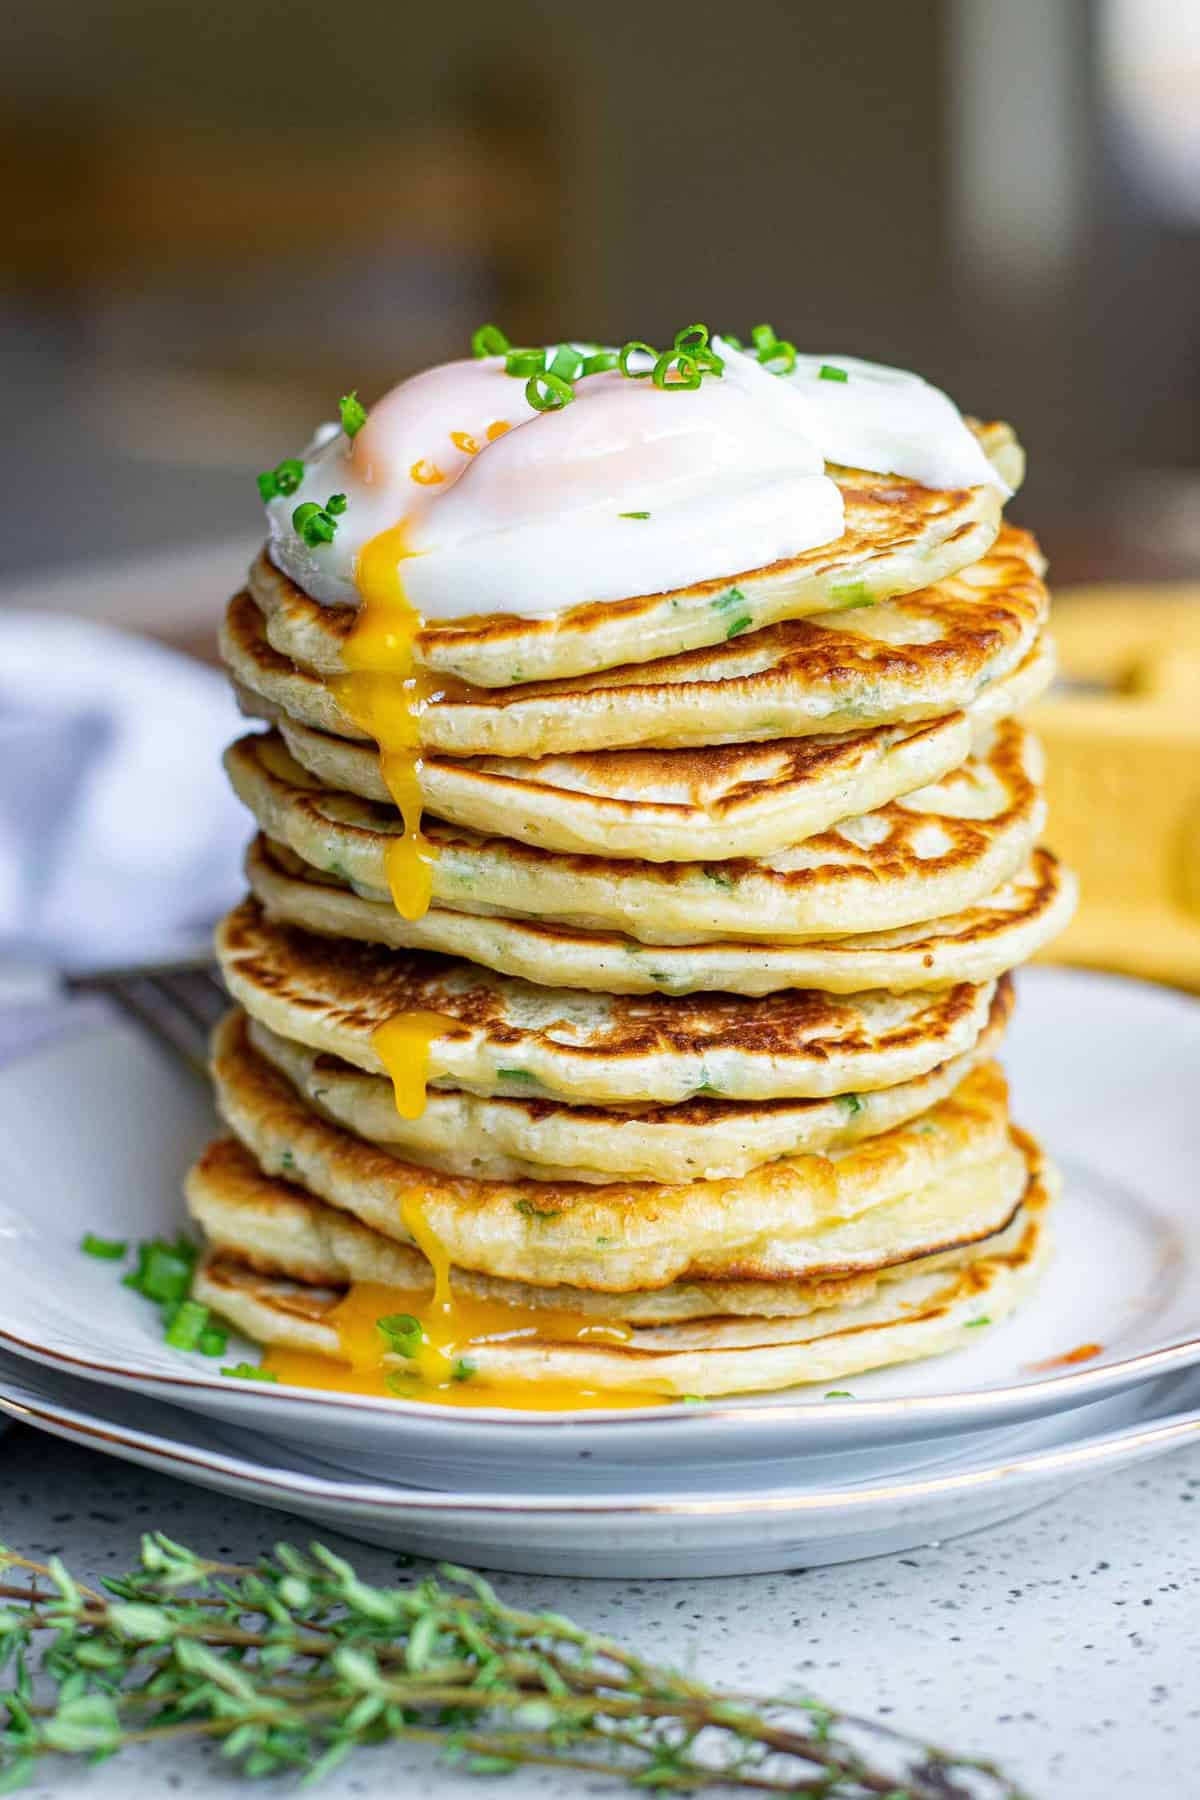 Tall stack of pancakes with a runny egg and chives on top.